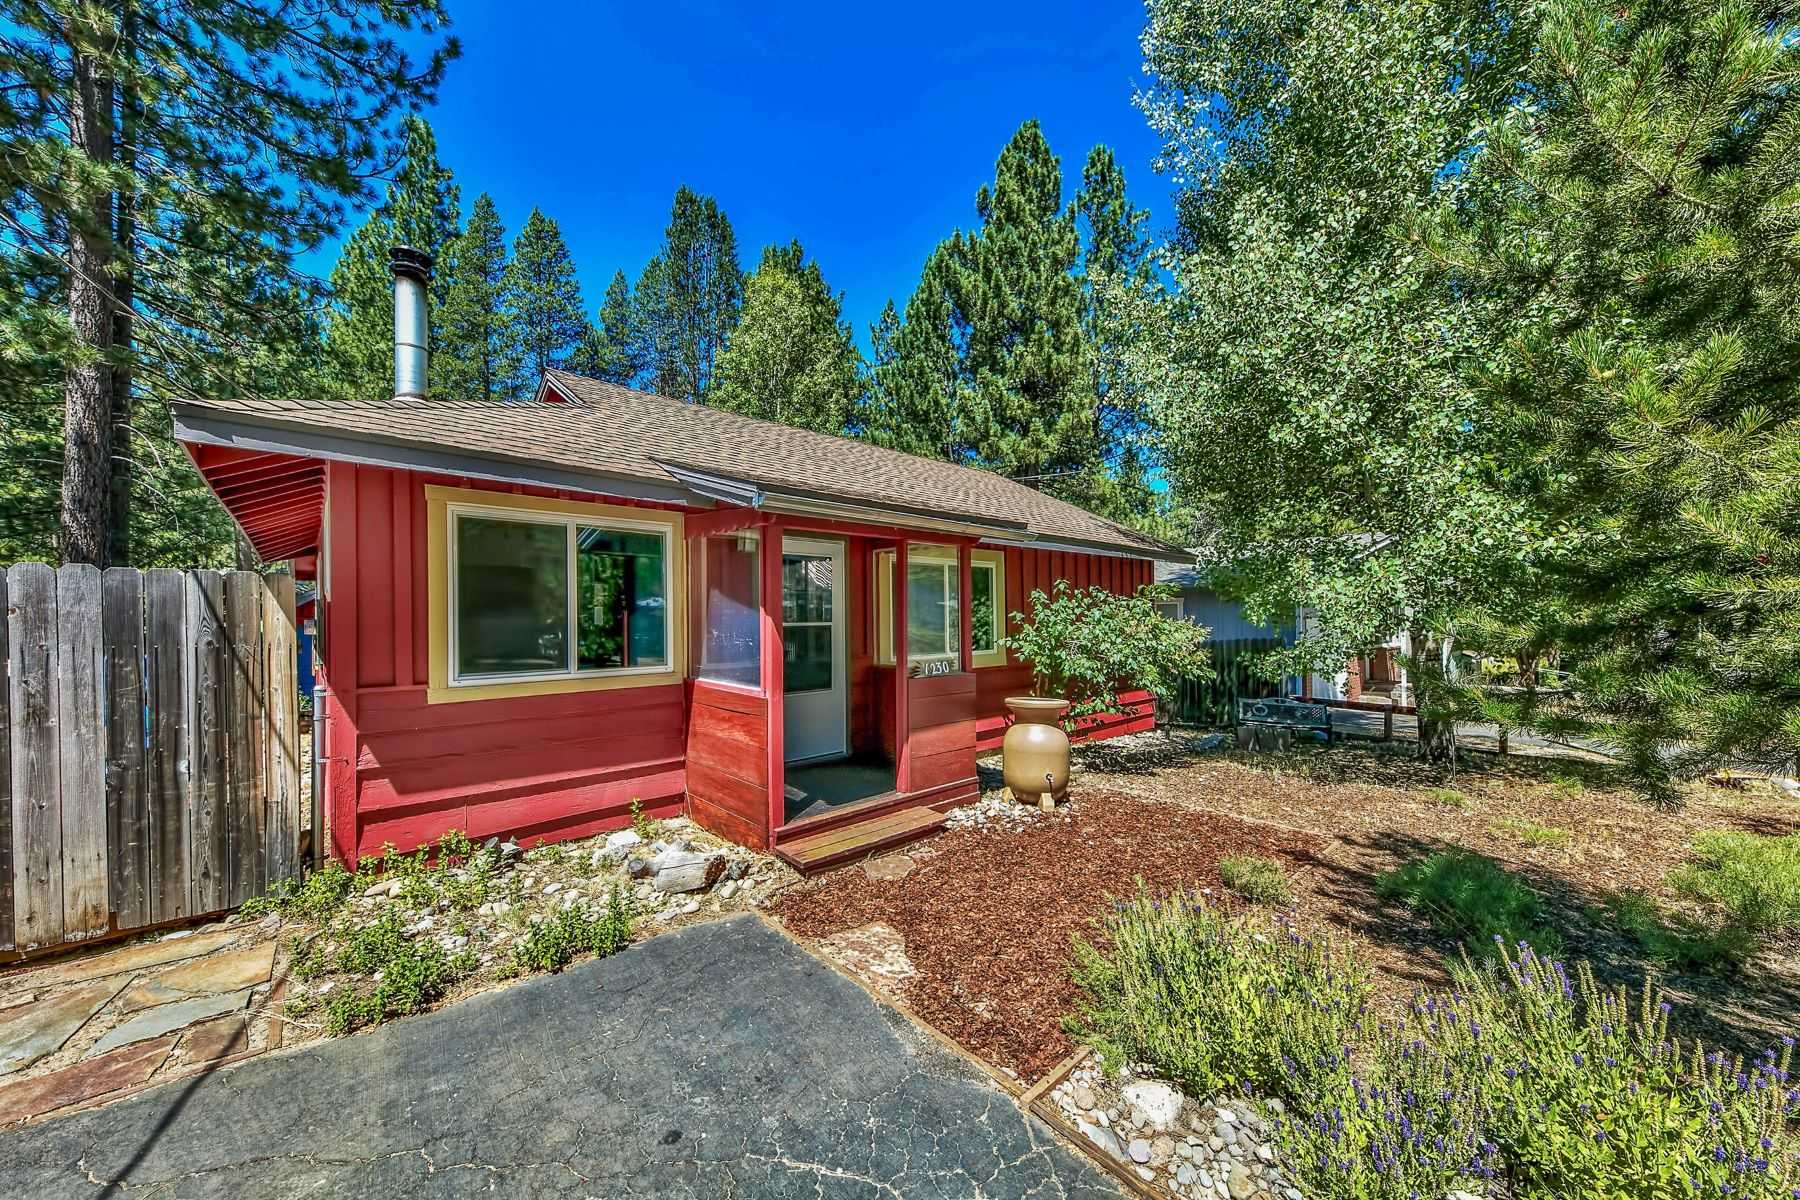 Single Family Homes for Active at 1230 Omalley Drive, South Lake Tahoe, CA 96150 1230 Omalley Drive South Lake Tahoe, California 96150 United States